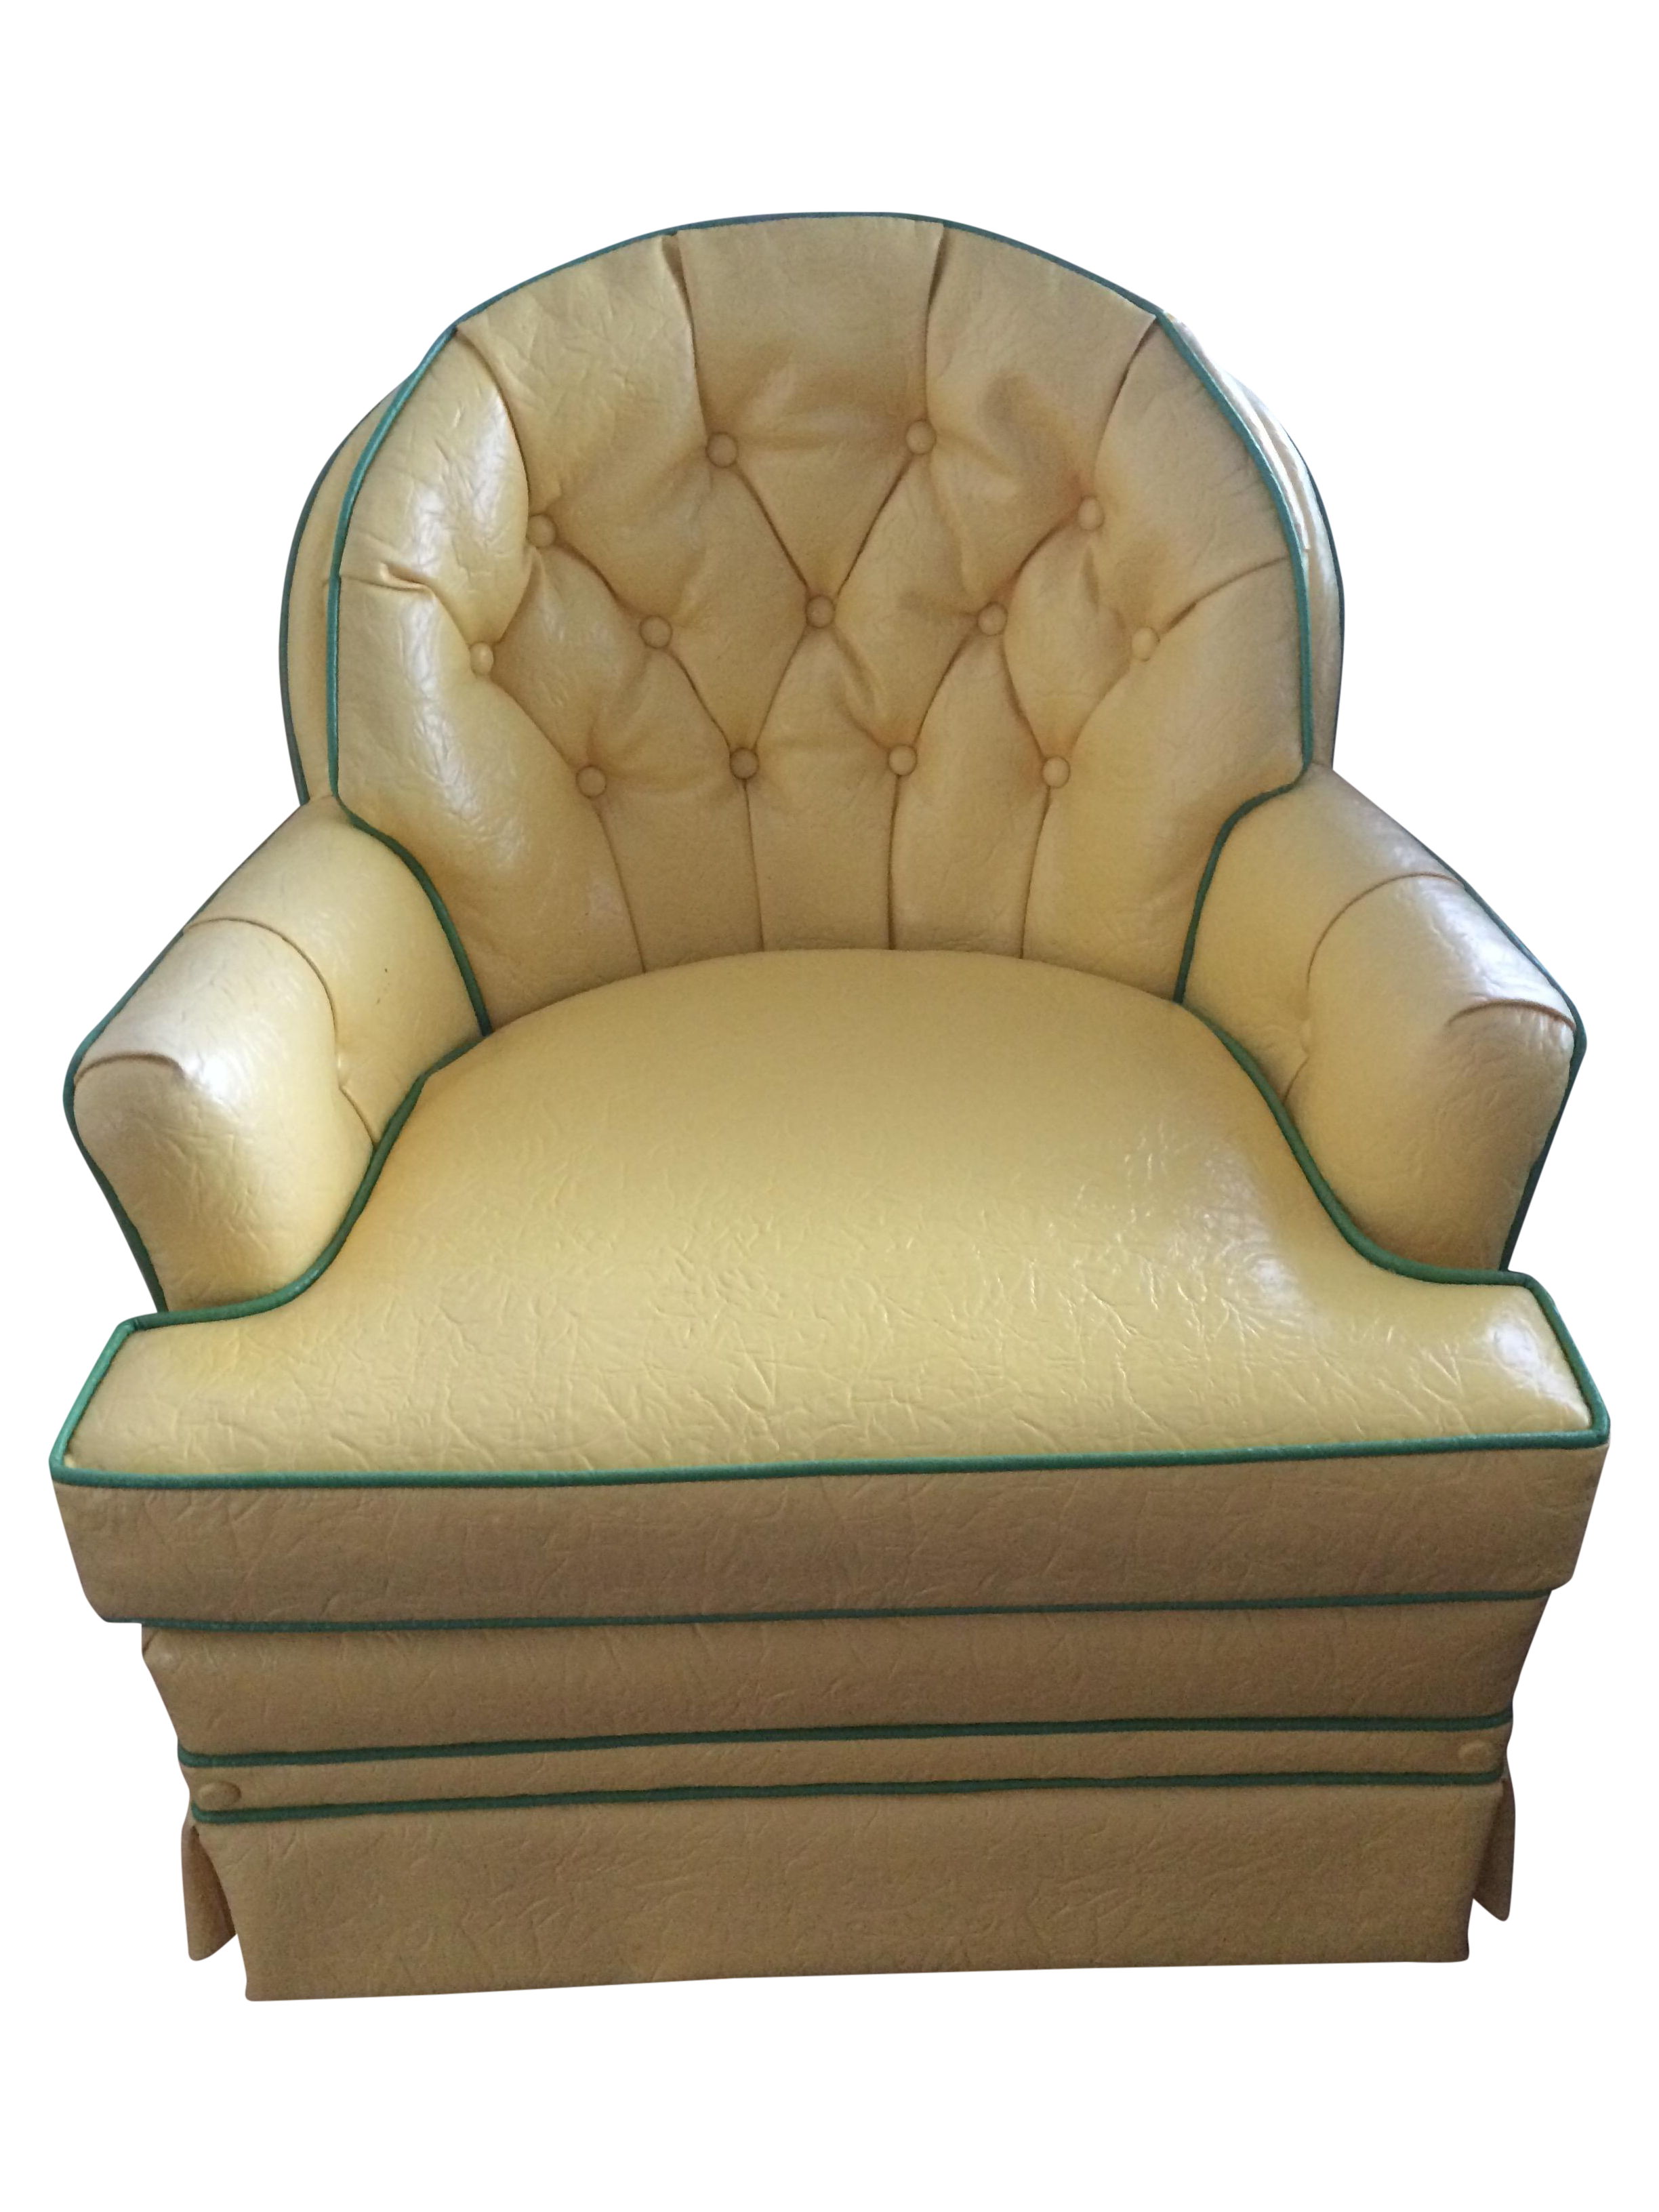 Woodmark Originals Leather Swivel Club Chair